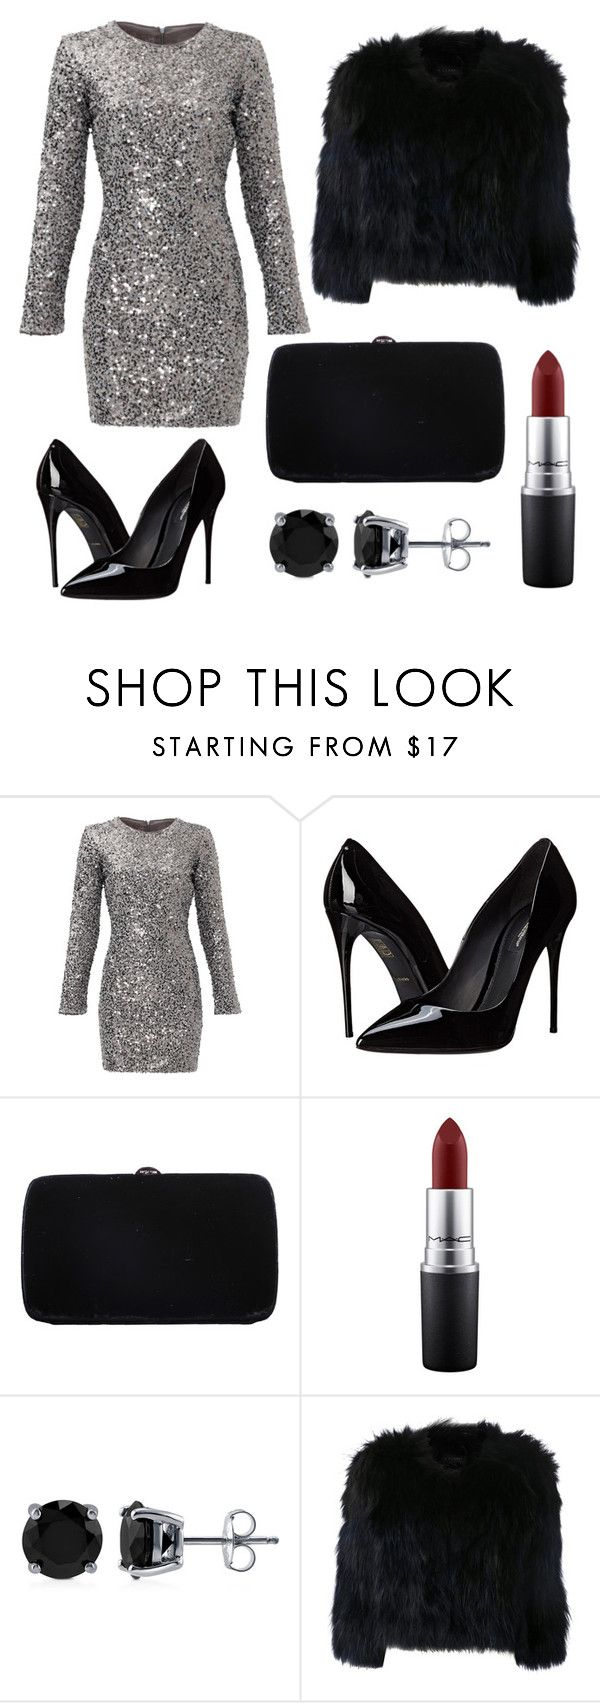 """PLH"" by keepsmileanna on Polyvore featuring Slate & Willow, Dolce&Gabbana, Sergio Rossi, MAC Cosmetics, BERRICLE and H Brand"